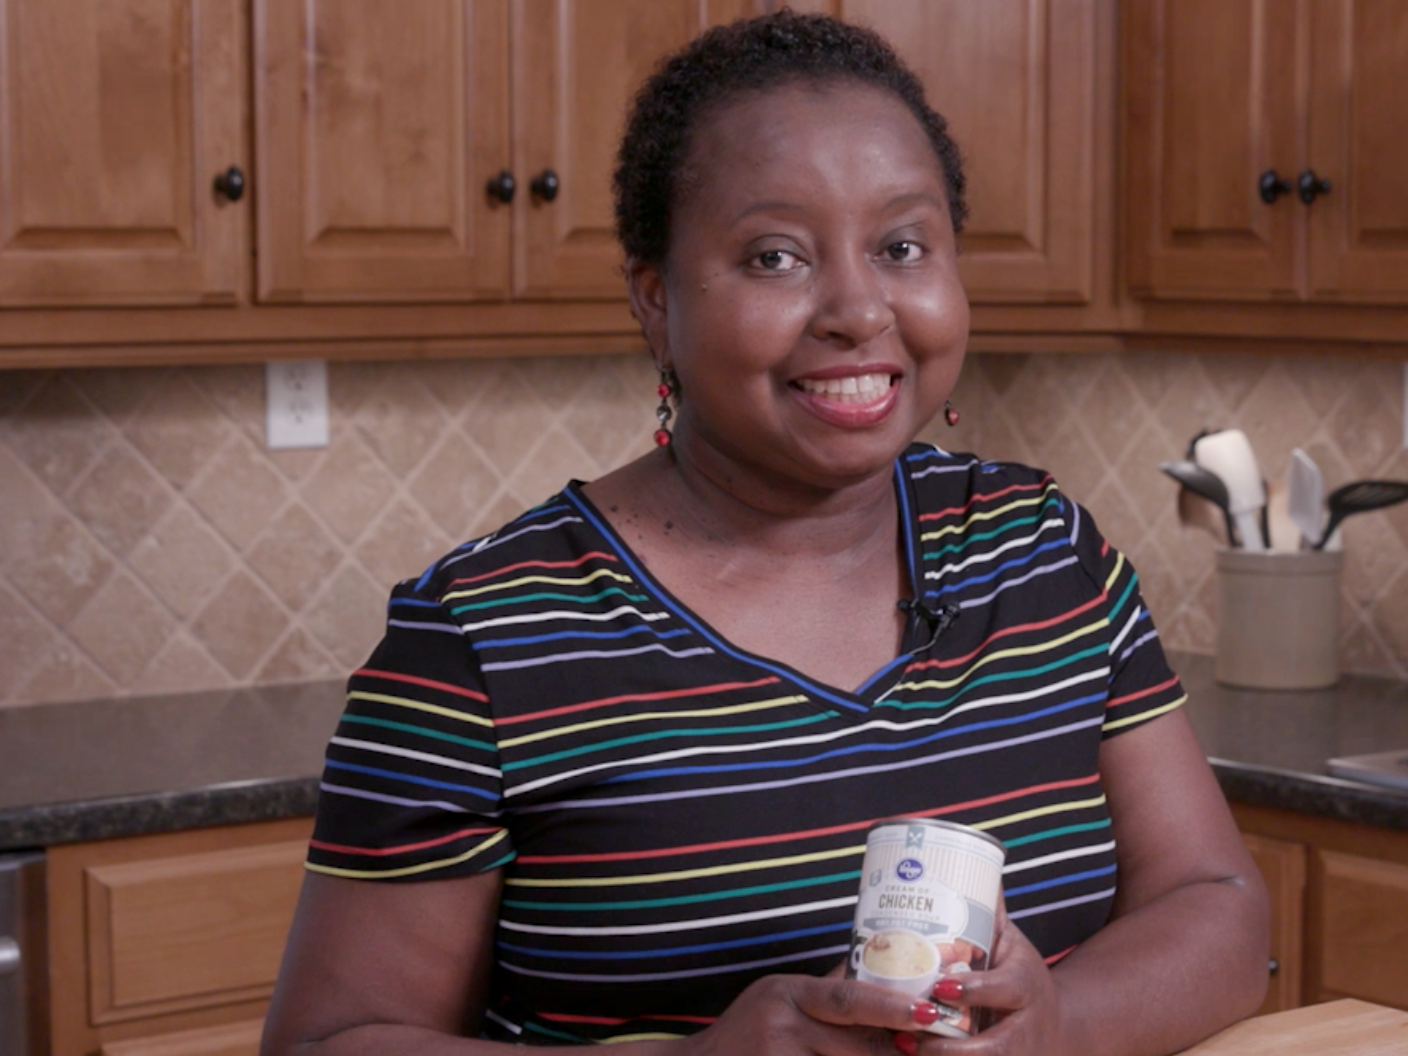 A woman stands in a kitchen while holding a can of reduced fat cream of chicken soup.